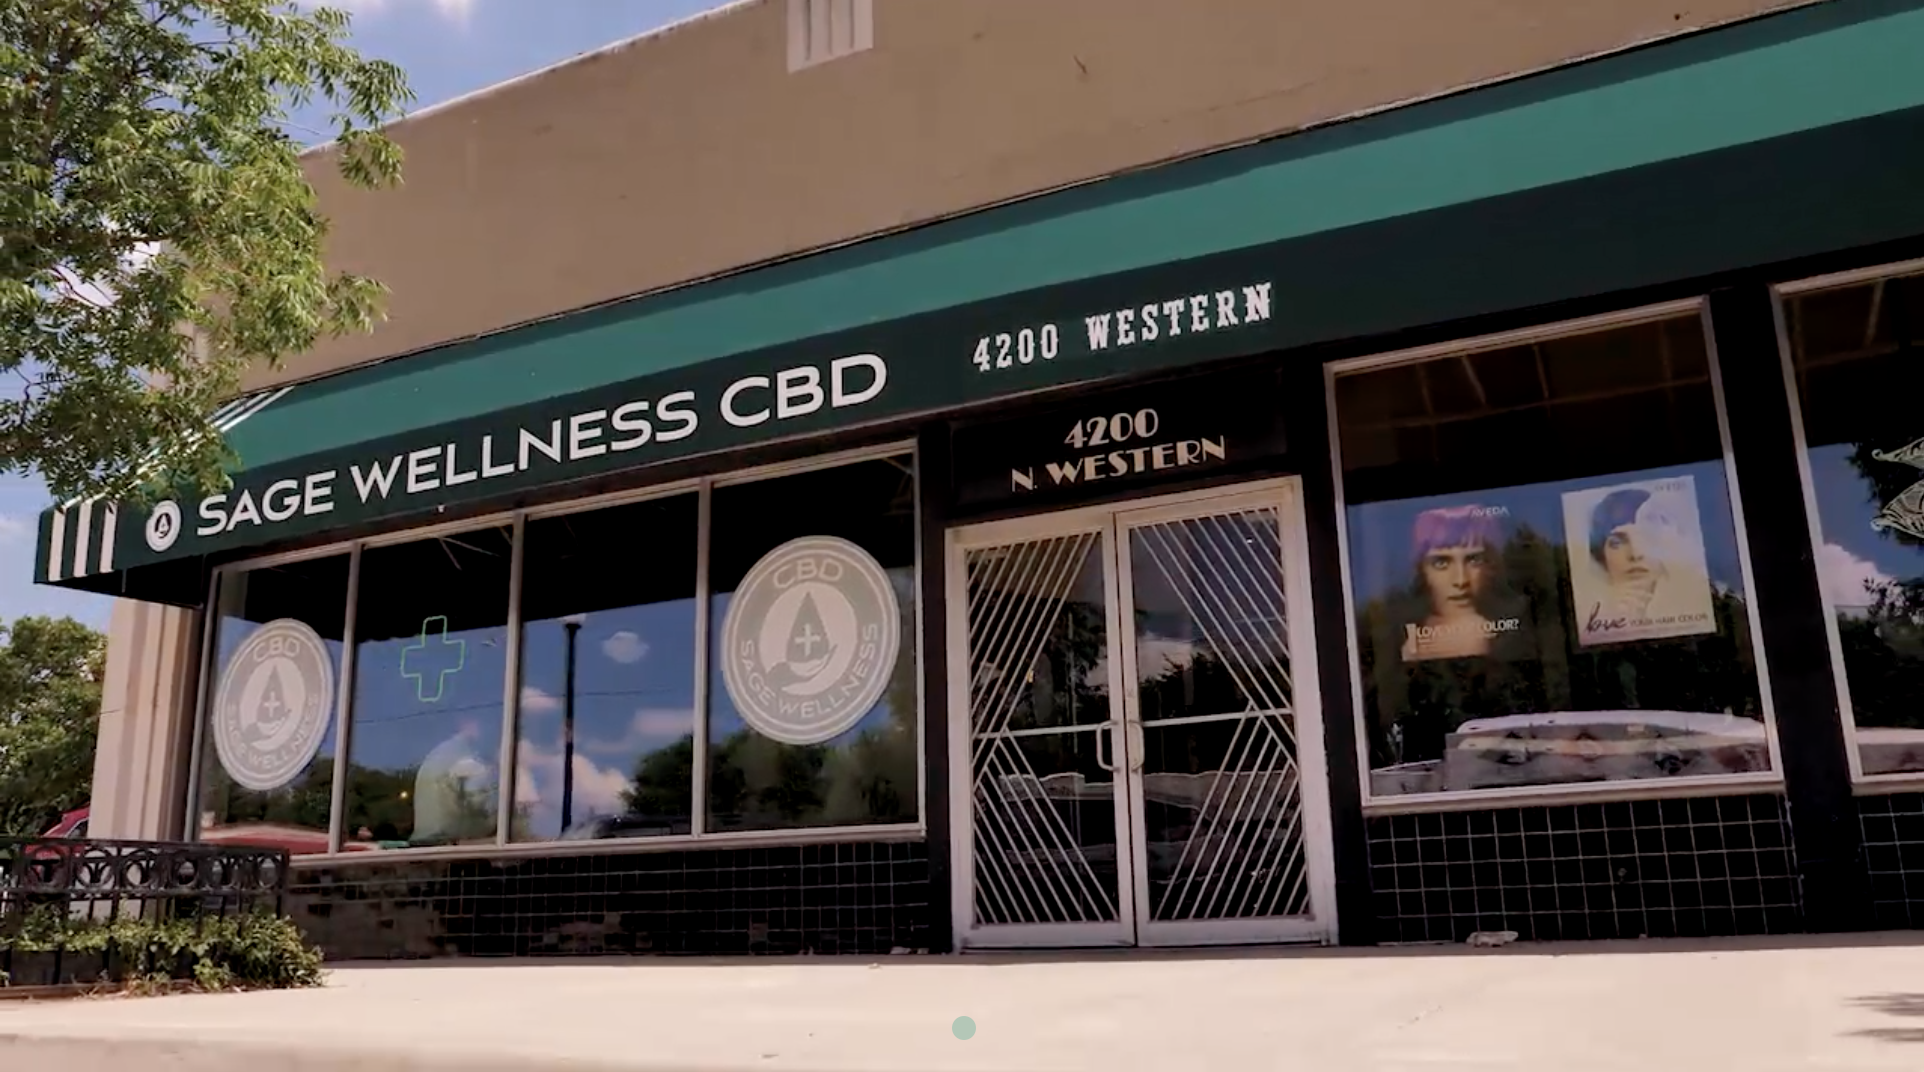 Sage Wellness storefront in Oklahoma City